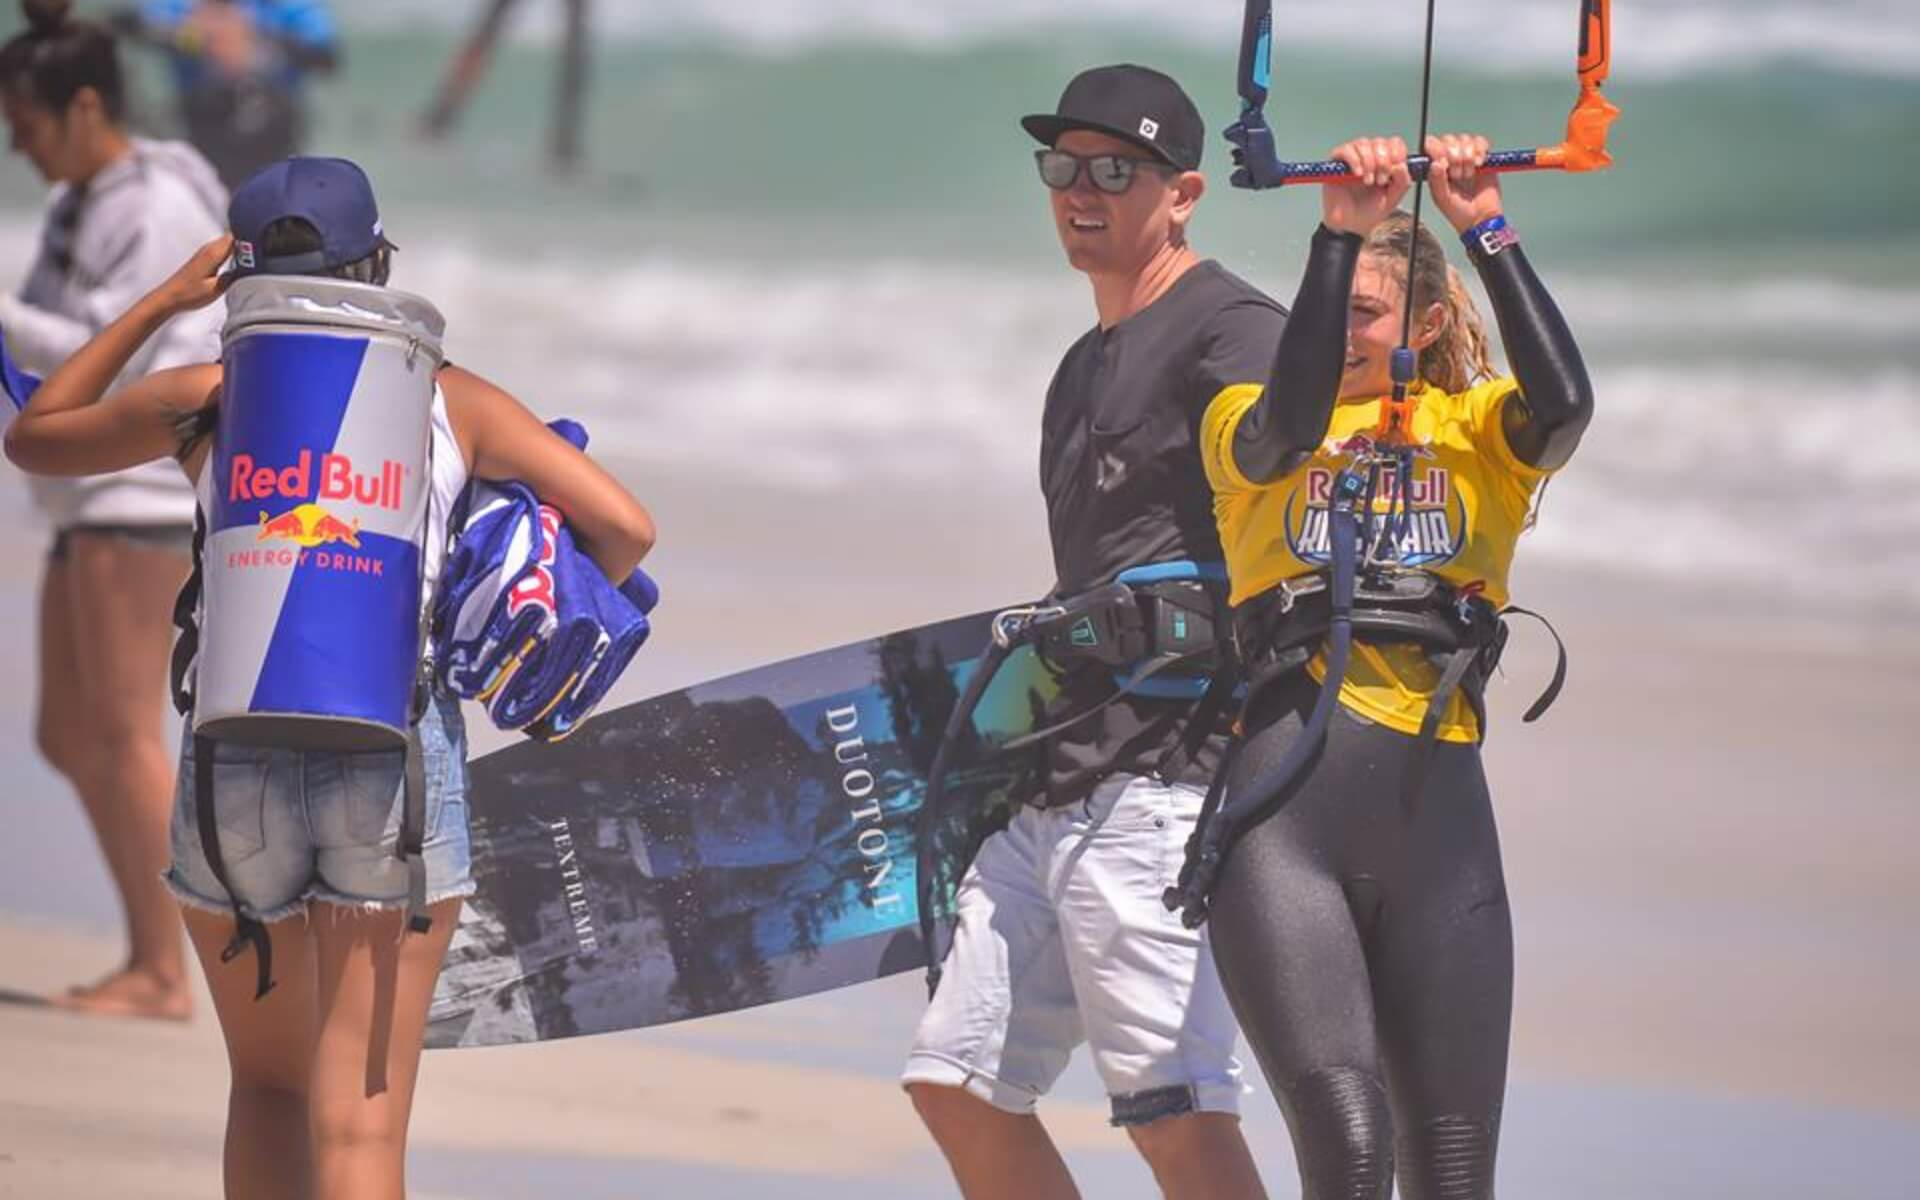 Duotone_Kiteboarding_Hannah_Whiteley_Red_Bull_Expression_Session